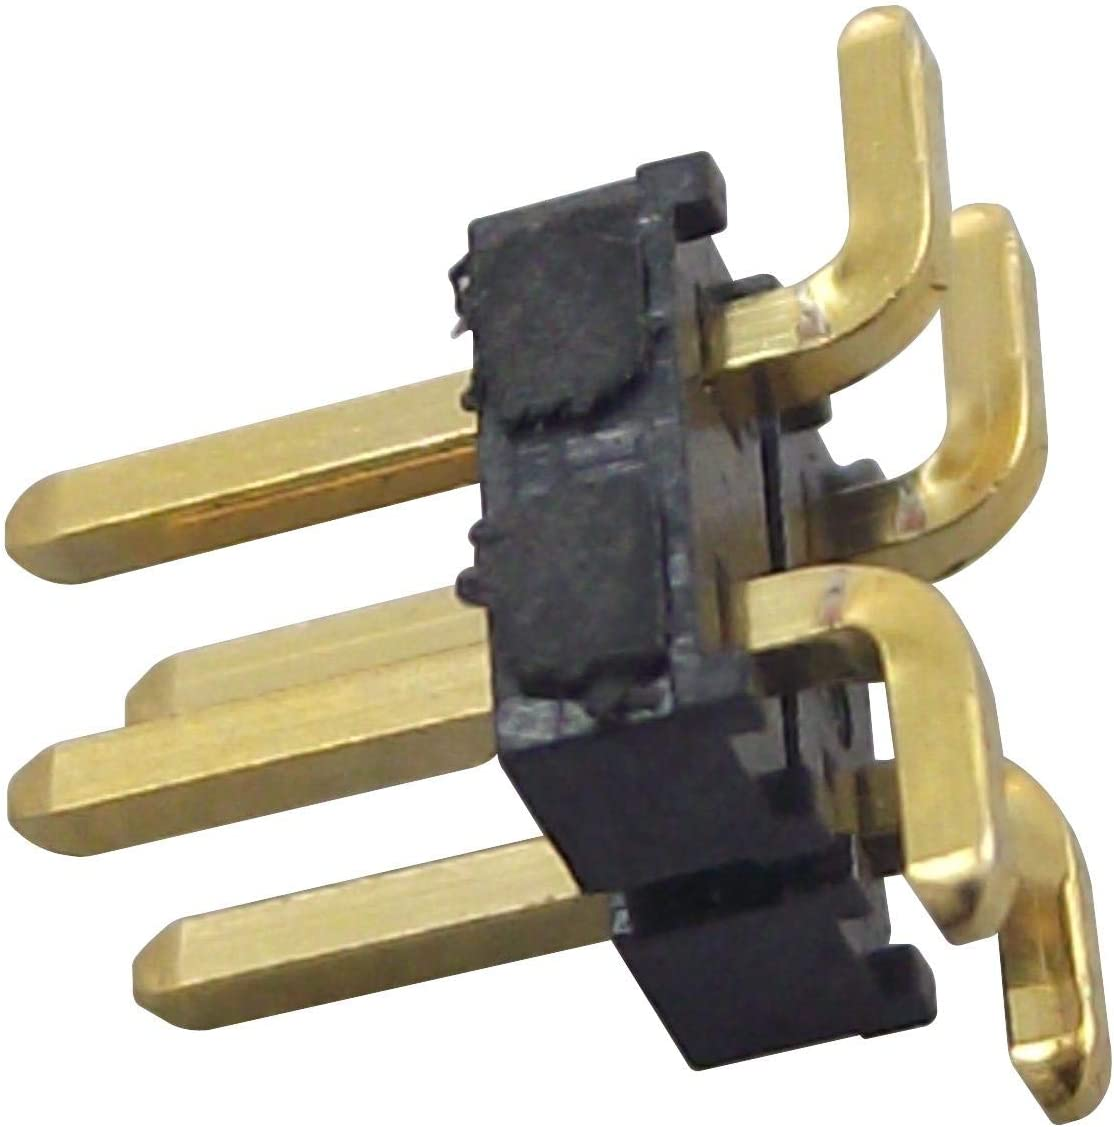 Board-To-Board Connector Header Surface Mount TMM Series 2 mm Pack of 20 10 Contacts TMM-105-06-LM-D-SM-P 2 Rows TMM-105-06-LM-D-SM-P